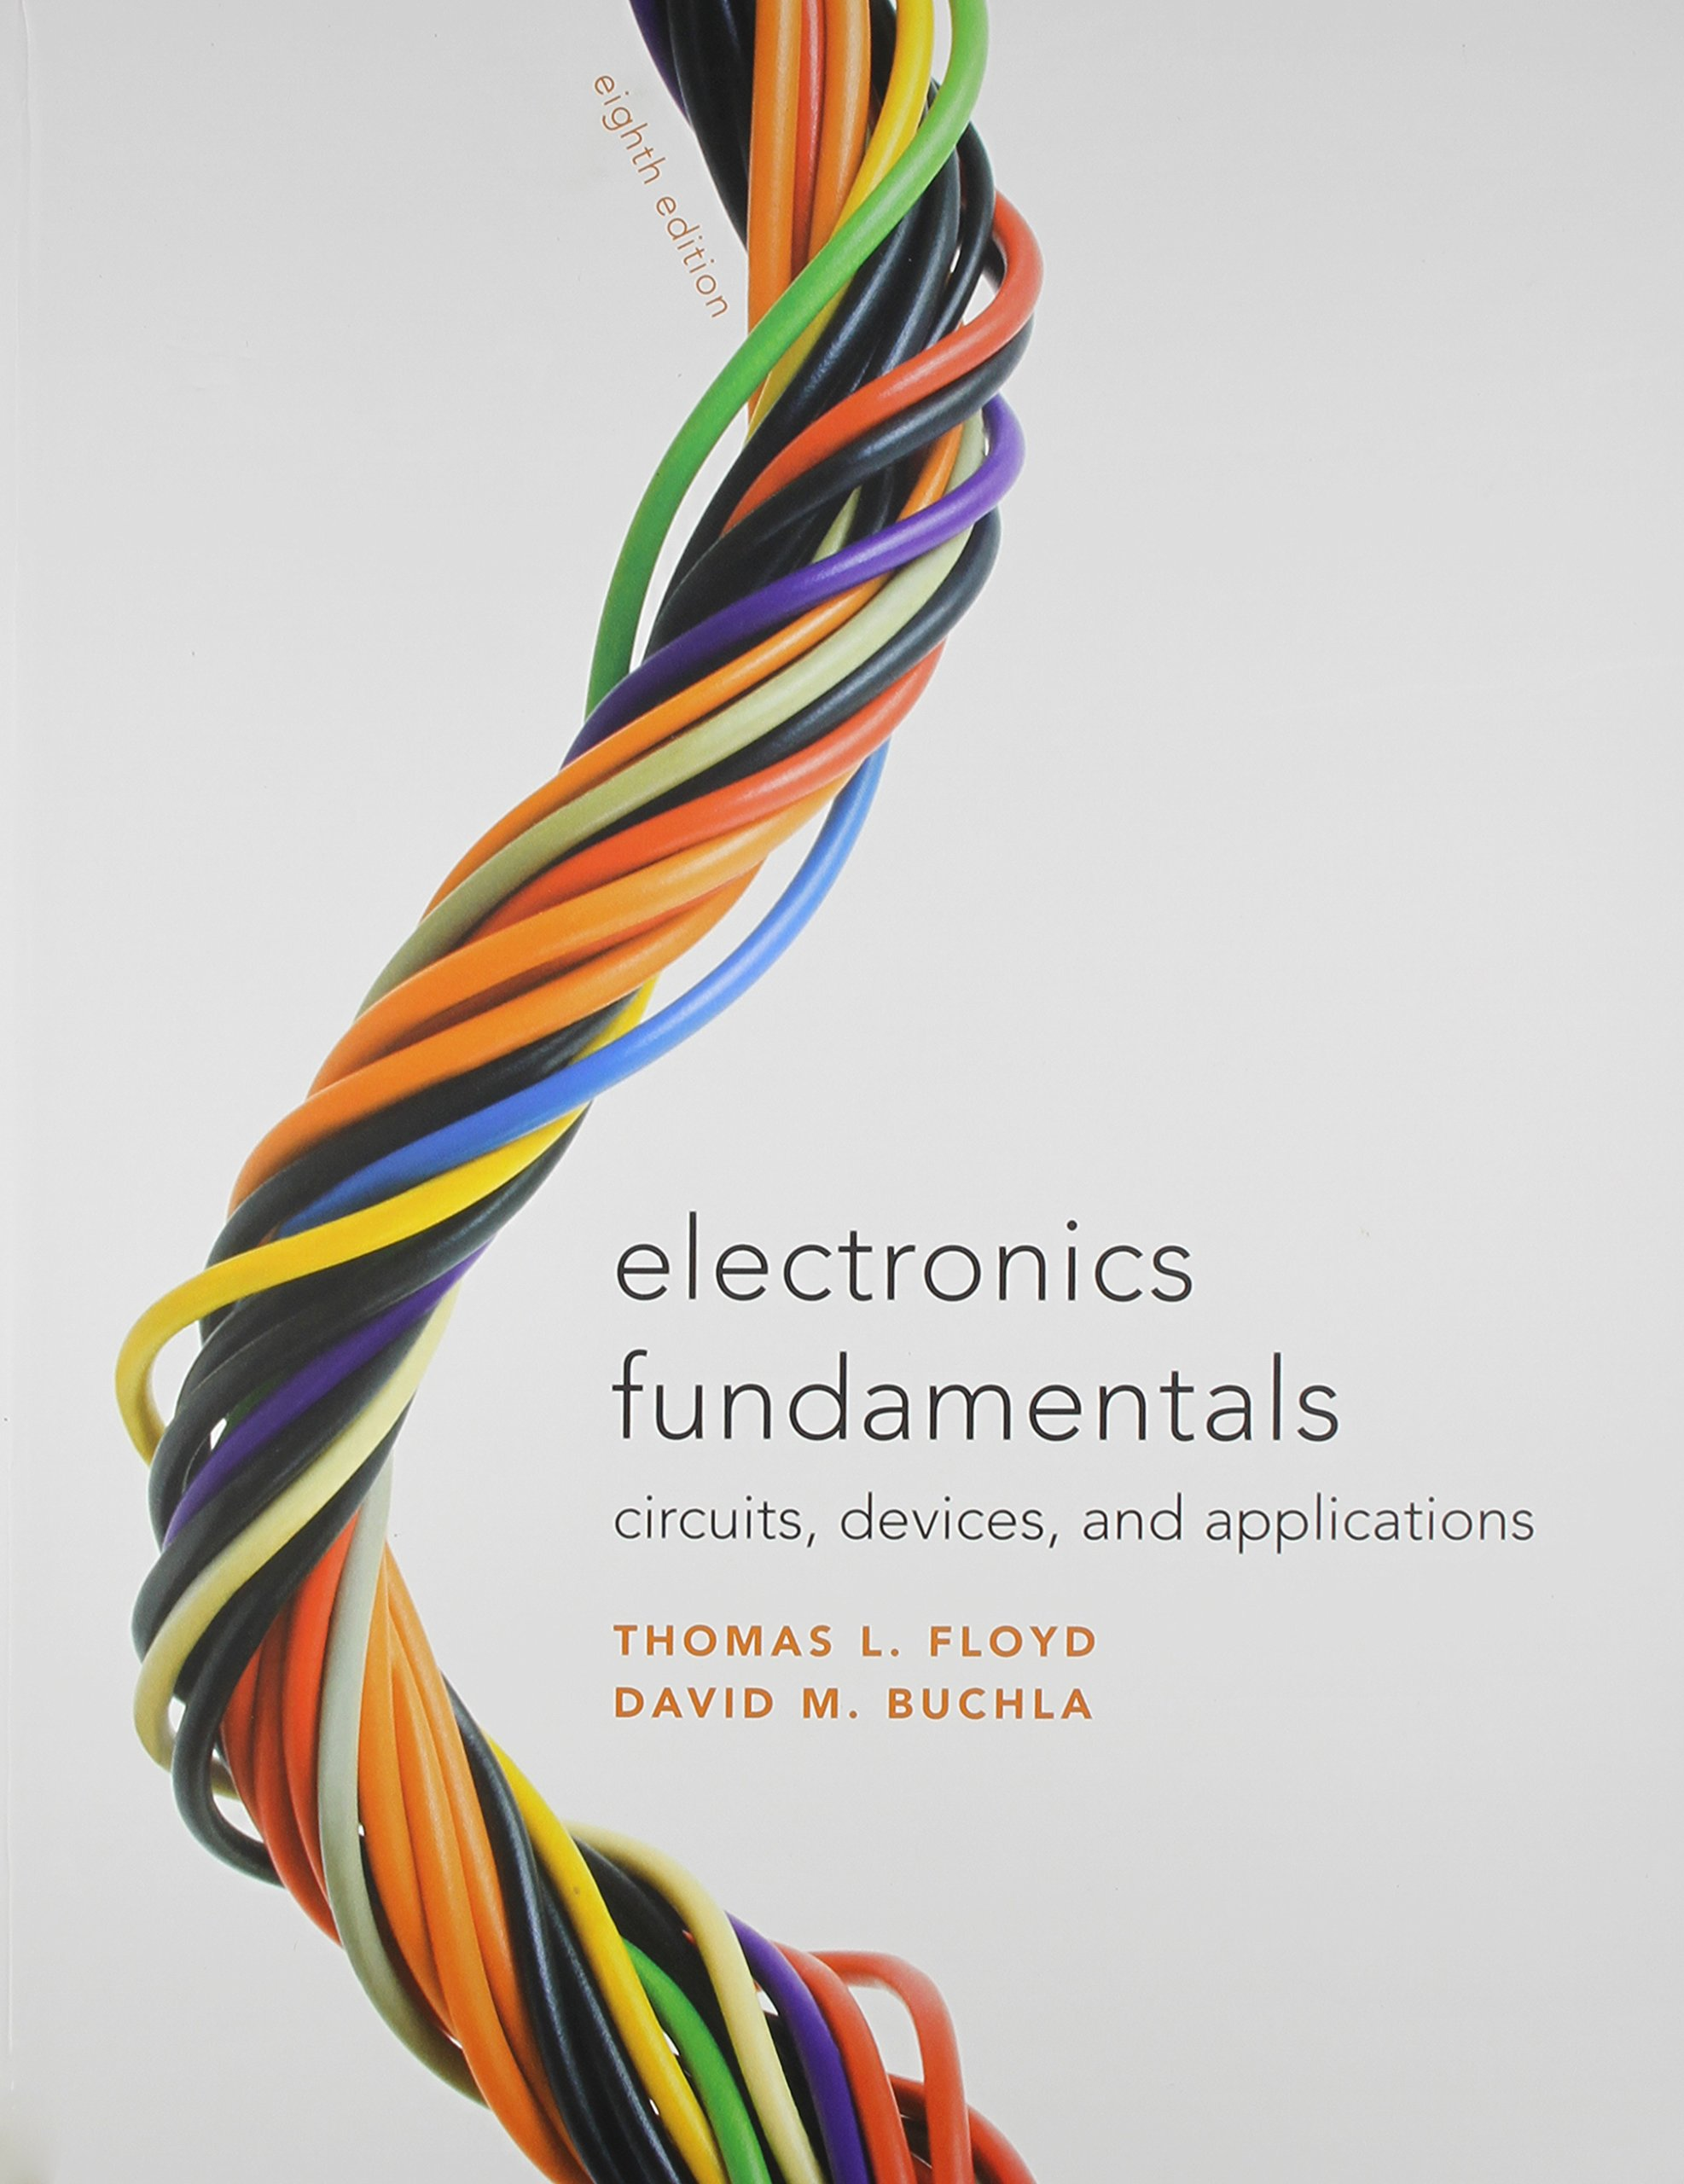 Electronics Fundamentals: Circuits, Devices & Applications with Lab Manual:  Thomas L. Floyd, David M. Buchla: 9780136125129: Books - Amazon.ca